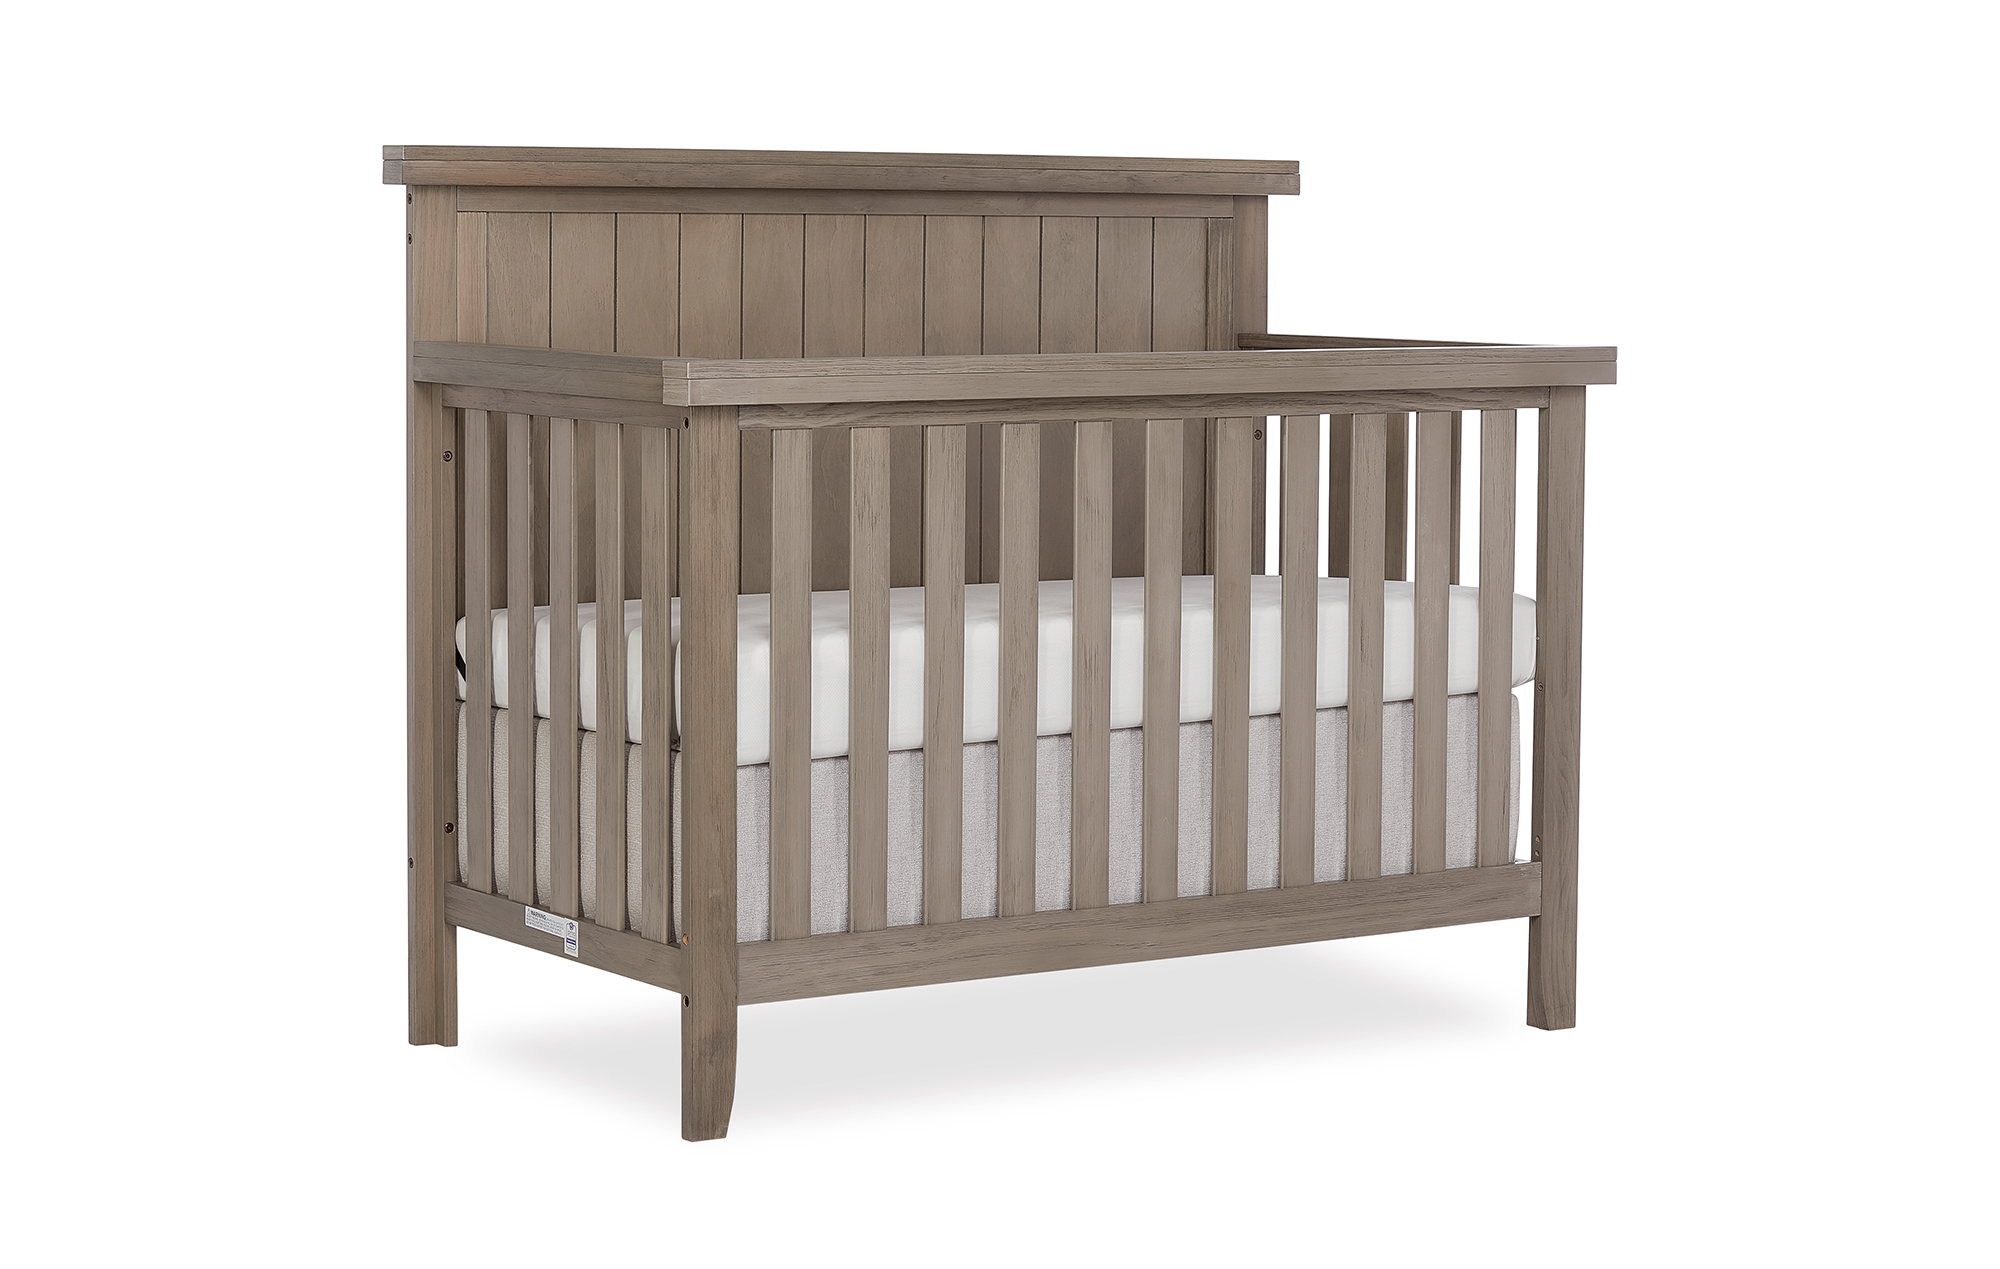 772BR-OAKGY Maple Convertible Crib Side